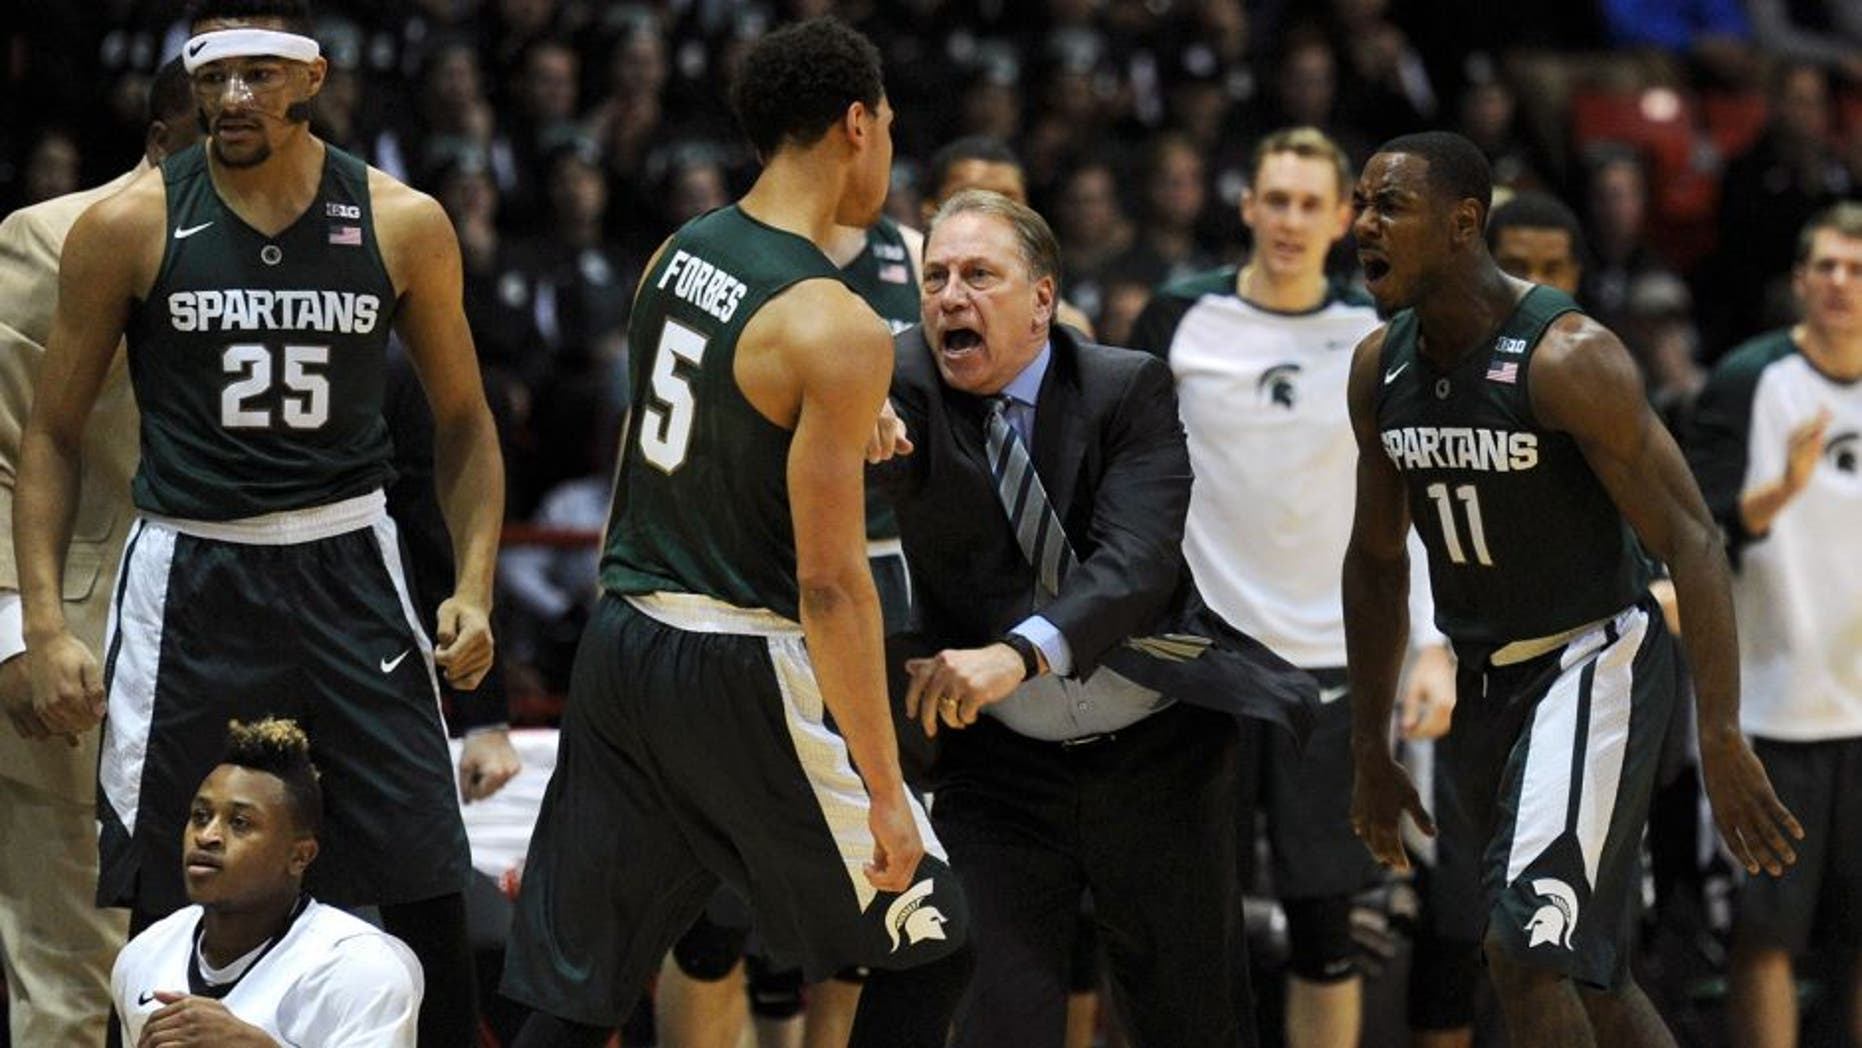 Dec 19, 2015; Boston, MA, USA; Michigan State Spartans head coach Tom Izzo reacts after a play made by guard Bryn Forbes (5) during the first half against the Northeastern Huskies at Matthews Arena. Mandatory Credit: Bob DeChiara-USA TODAY Sports